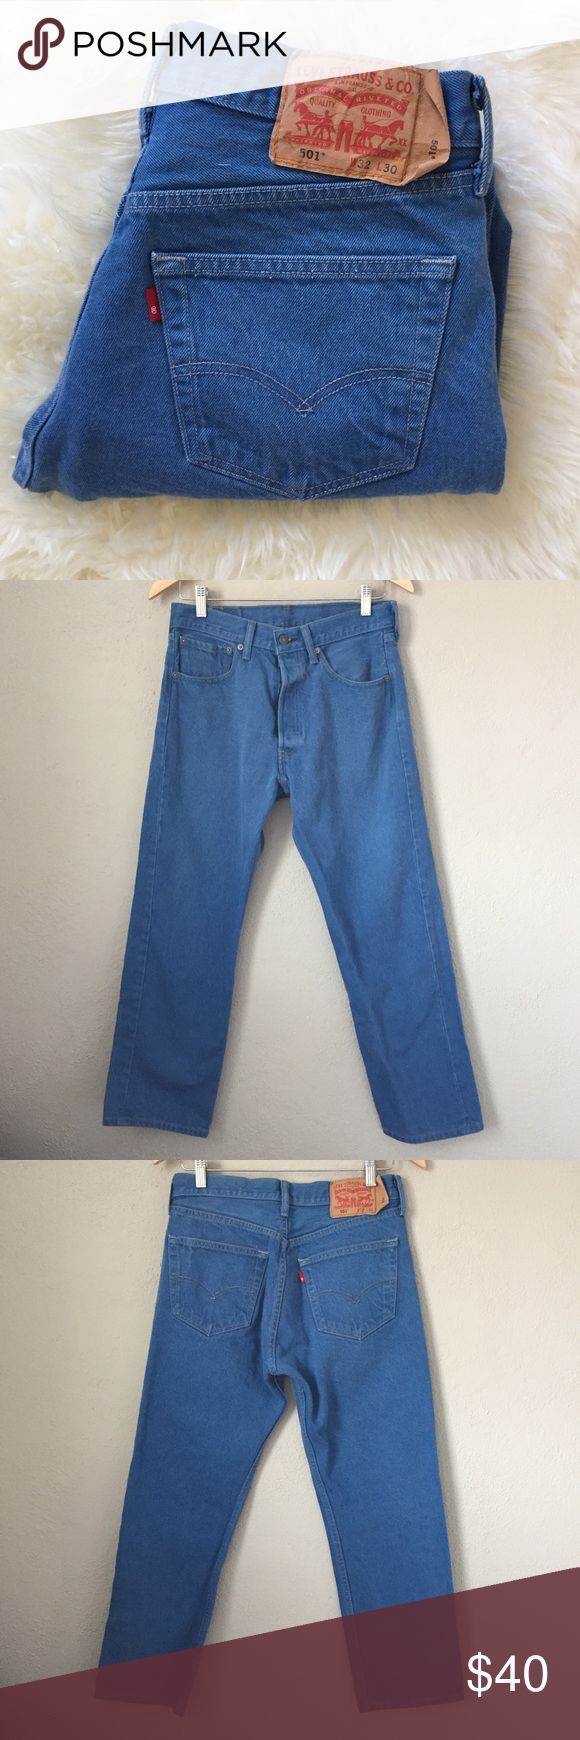 Levi's 501 Bright Blue Jeans 31x27 Levi's 501s in a bright blue wash.that is hard to capture by camera. These are in excellent condition with no holes or tears. Measures 31x27 but tag is 32x30. Rise is 10.5 inches. Please ask f you have any questions about these. I do not trade or model. Levi's Jeans Boyfriend